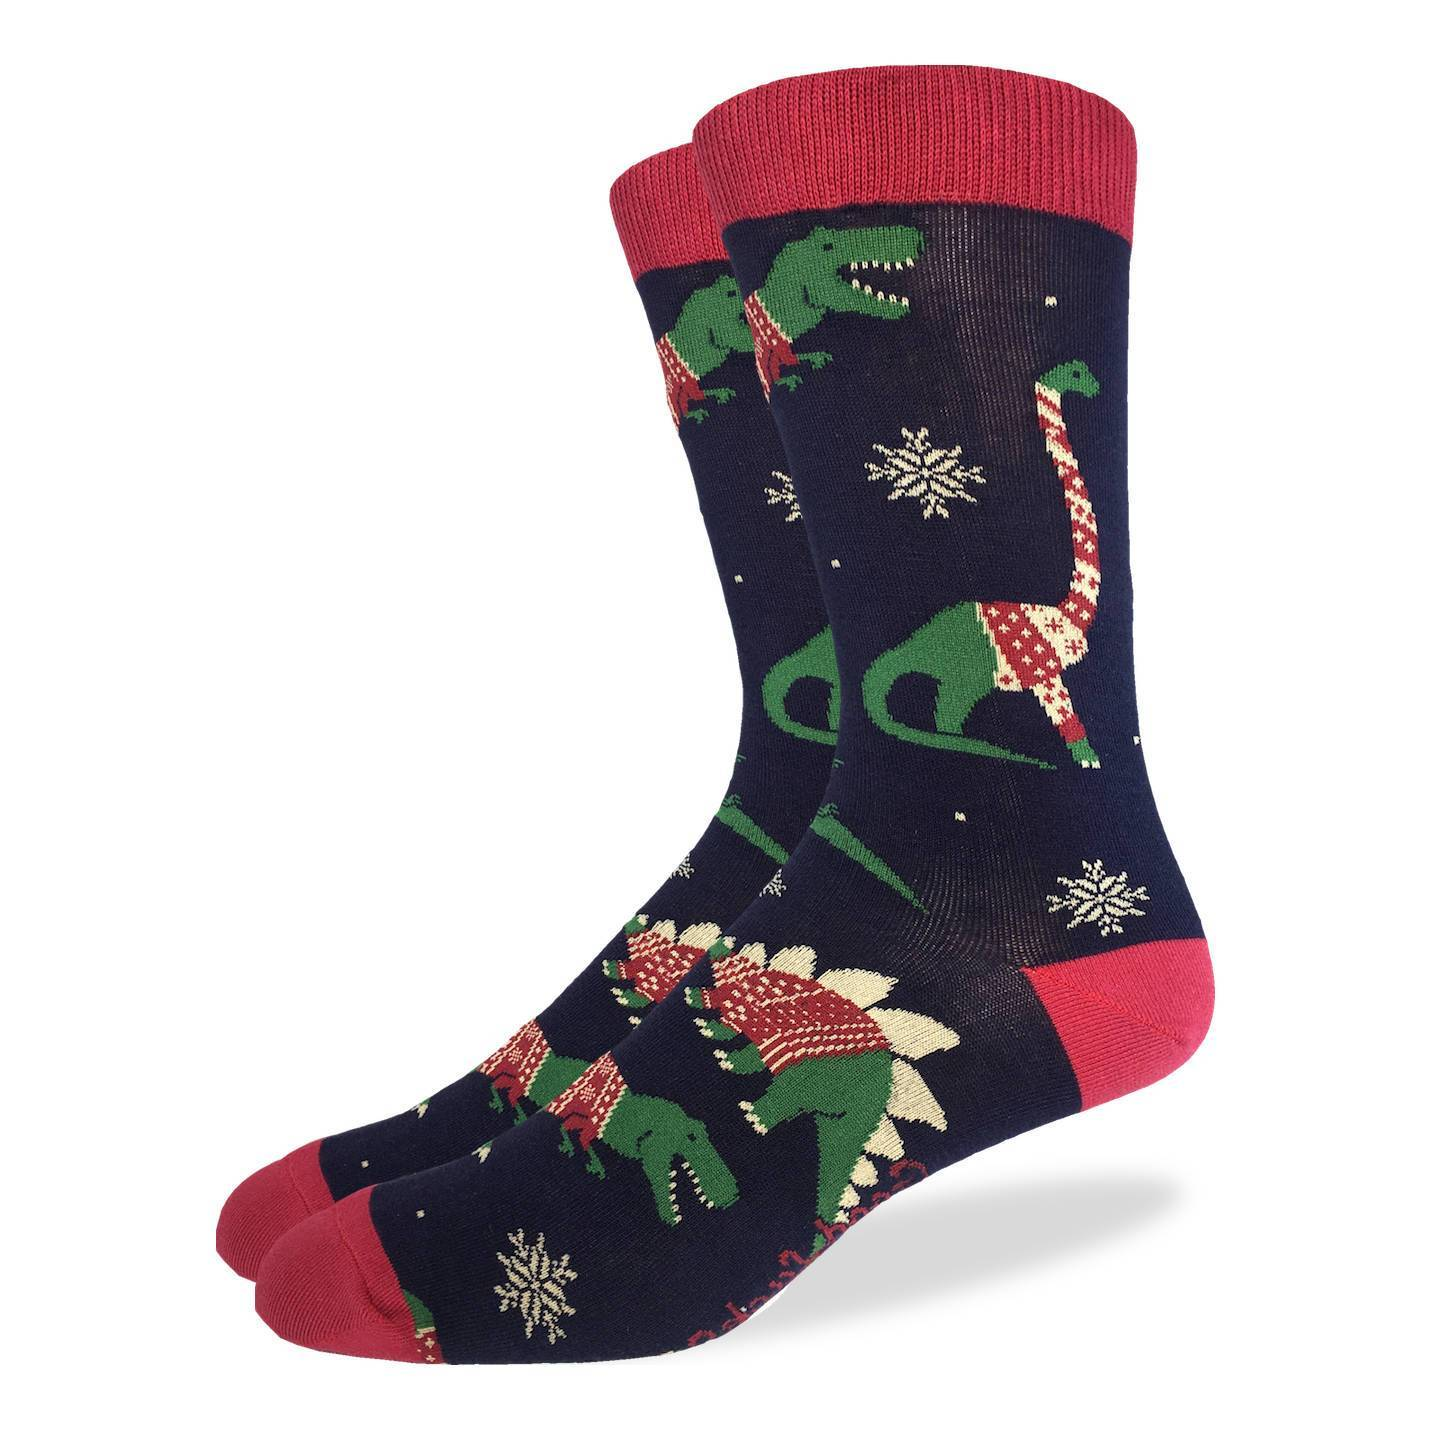 Men's Christmas Sweater Dinosaurs Socks - Good Luck Sock